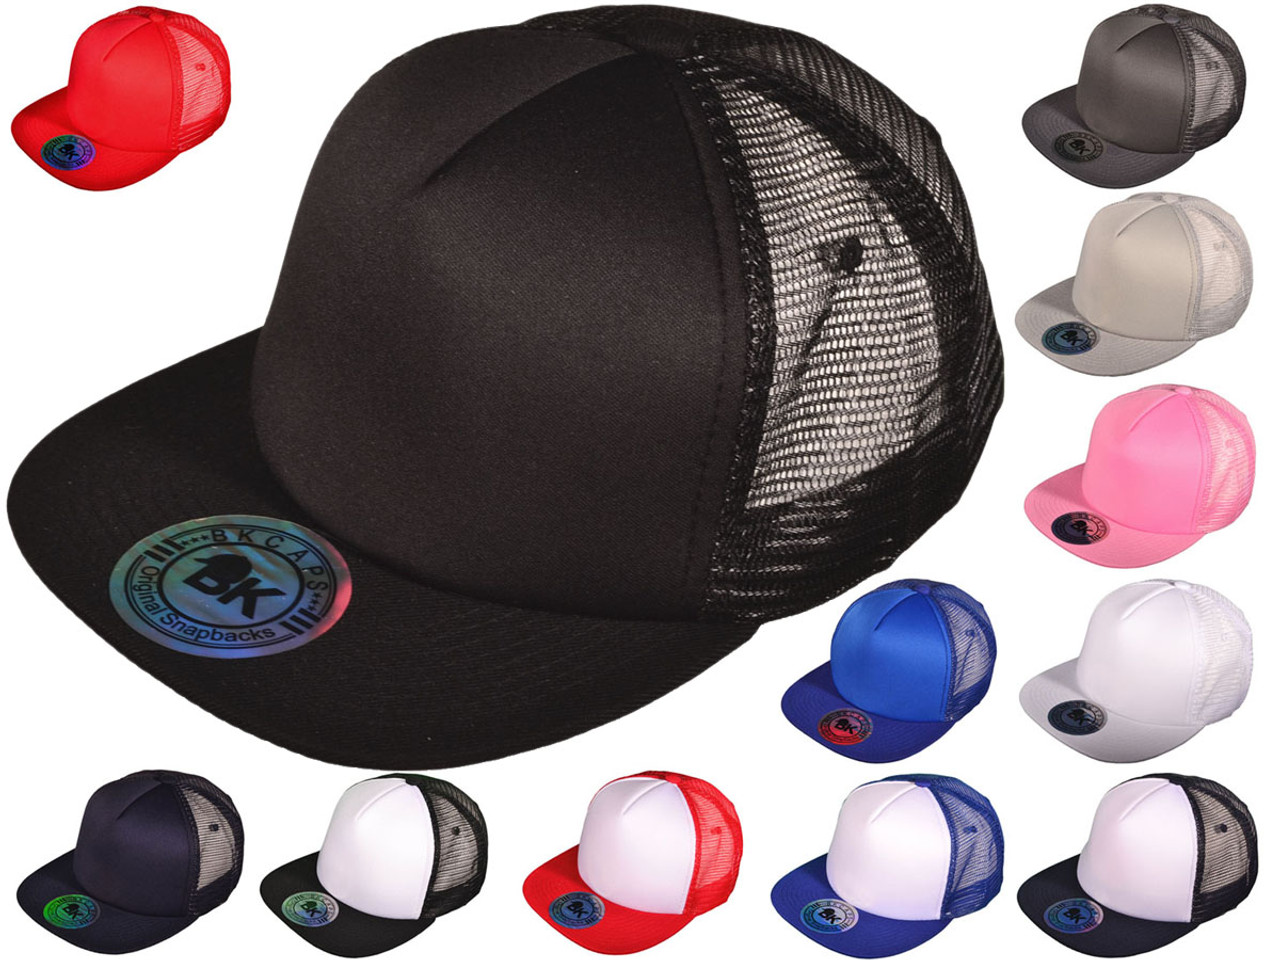 Wholesale BK Caps 2 Tone Flat Bill Polyester Foam Front Mesh Back Trucker  Hats (White Black) 260f30015a5